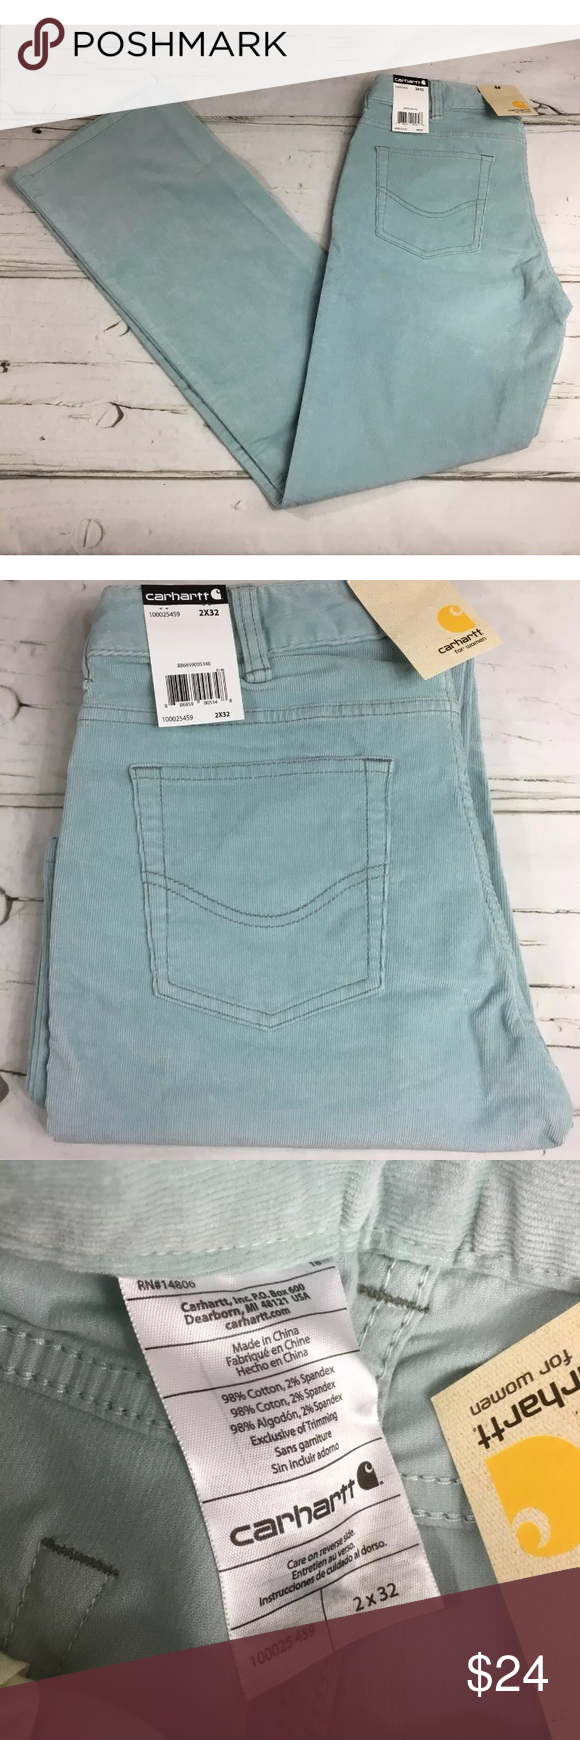 NWT Carhartt Women's Corduroy Jeans Pants Carhartt Women's Corduroy Jeans Pants Light Blue Button Zip 2/32 NWT Carhartt Jeans Straight Leg #carharttwomen NWT Carhartt Women's Corduroy Jeans Pants Carhartt Women's Corduroy Jeans Pants Light Blue Button Zip 2/32 NWT Carhartt Jeans Straight Leg #carharttwomen